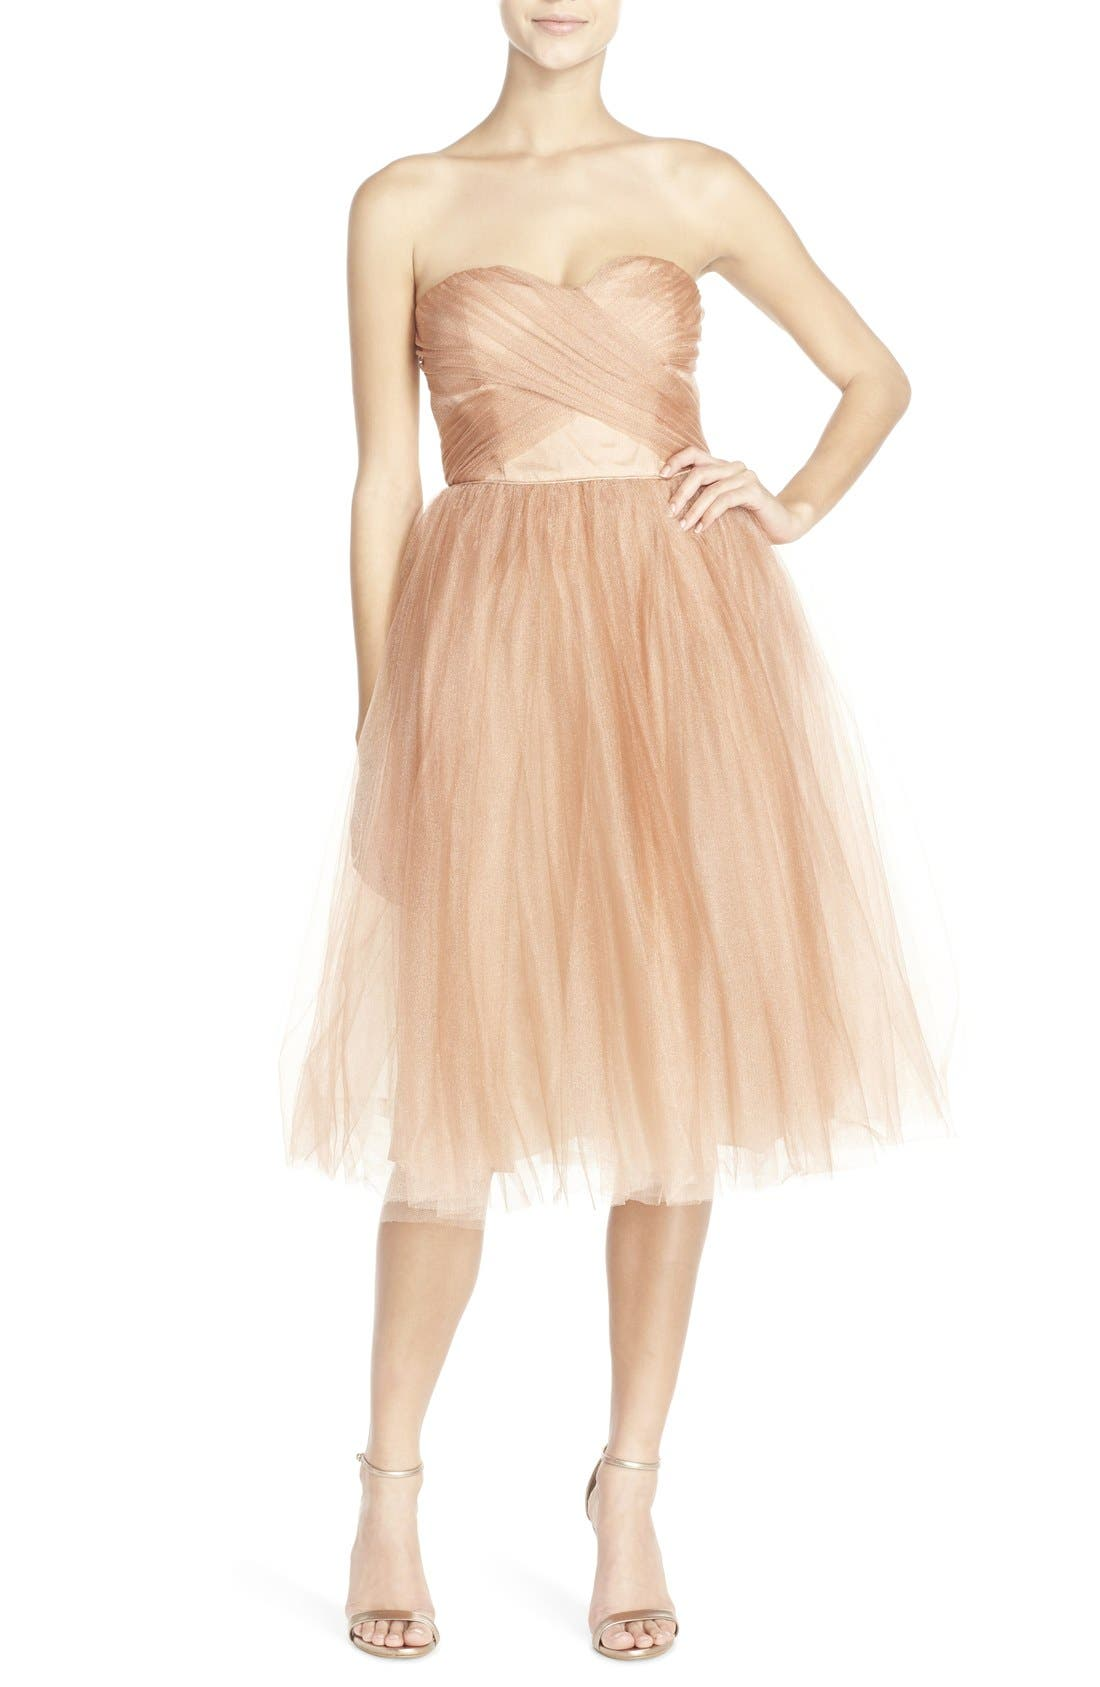 Alternate Image 1 Selected - Donna Morgan 'Kenna' Strapless Tulle Fit & Flare Dress